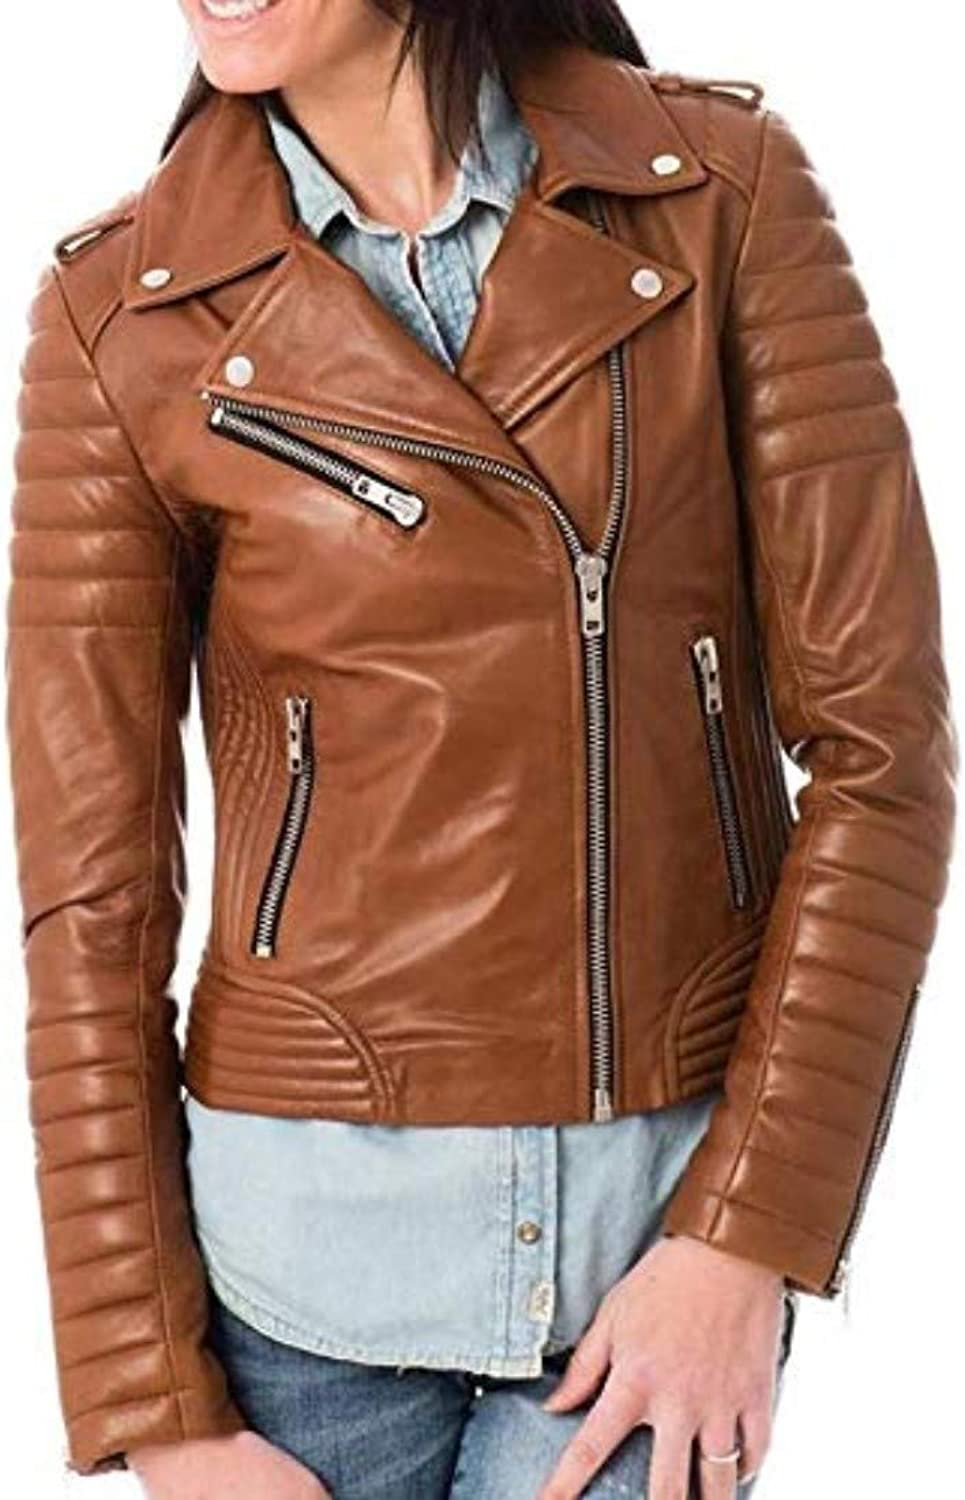 New Fashion Style Women's Leather Jackets Brown I49_